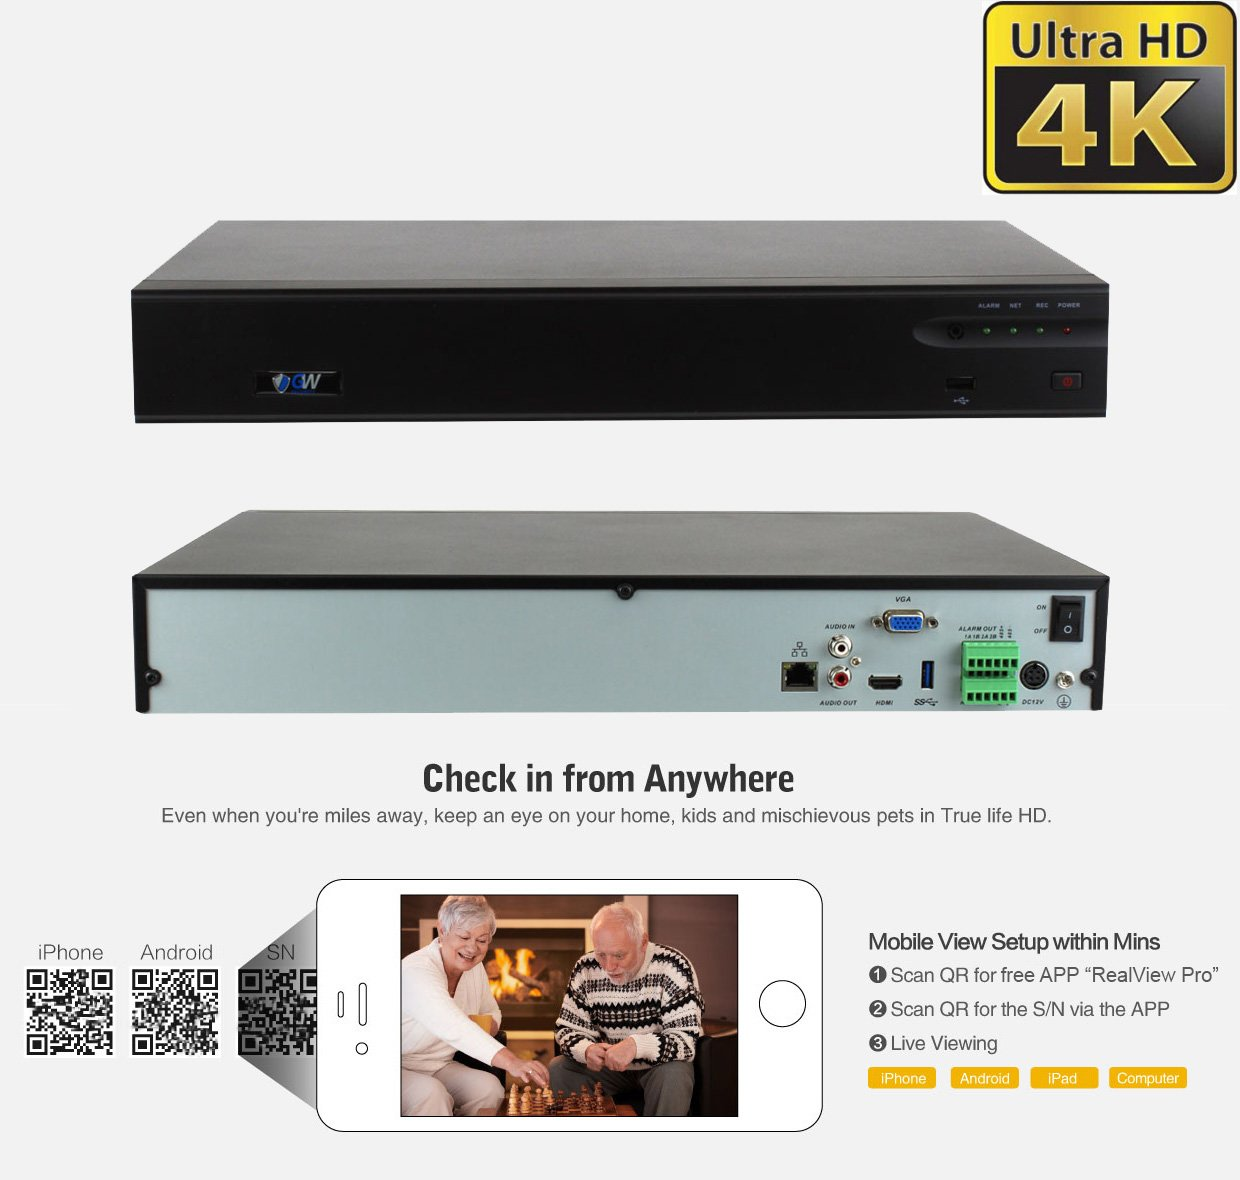 GW 32 Channel H.265/H.264 4K (3840×2160) NVR Security Network Video Recorder - Supports Up 32 X 8MP/5MP/4MP 1080P Any ONVIF IP Camera @ 30fps Realtime, Hold Up to 4x SATA HDDs by GW Security Inc (Image #2)